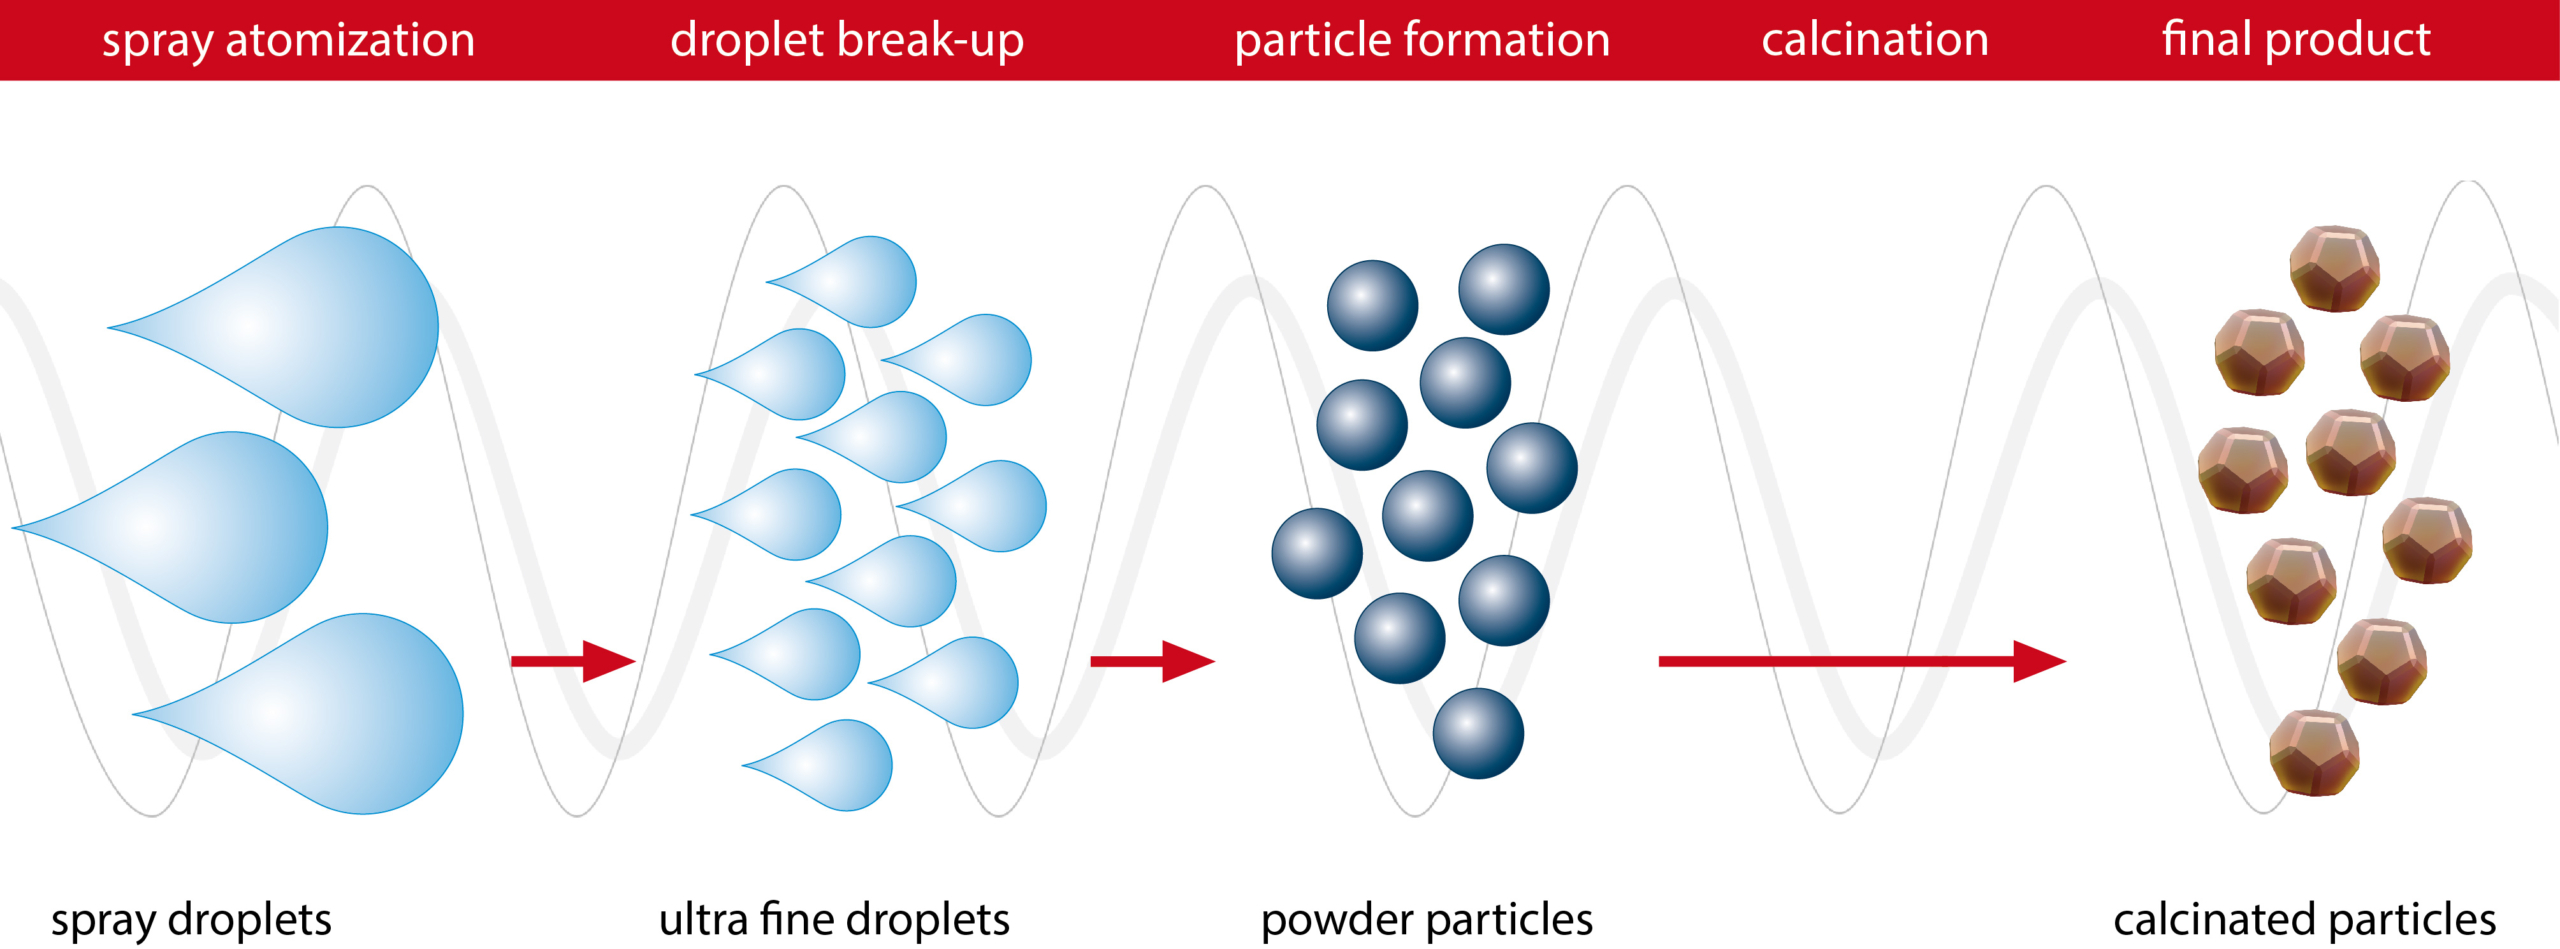 Spray calcination process using Glatt Powder Synthesis to generate homogeneous powders with micro- and nanoparticles with specific properties